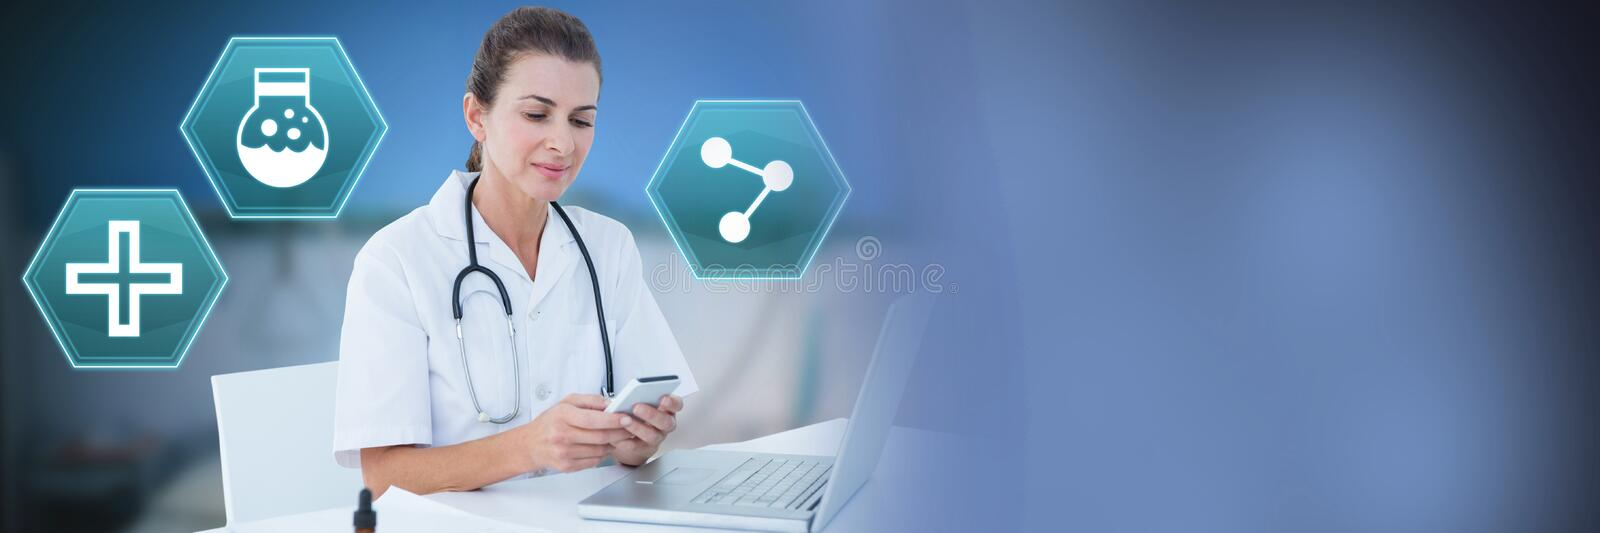 Female doctor using phone with medical interface hexagon icons stock photos